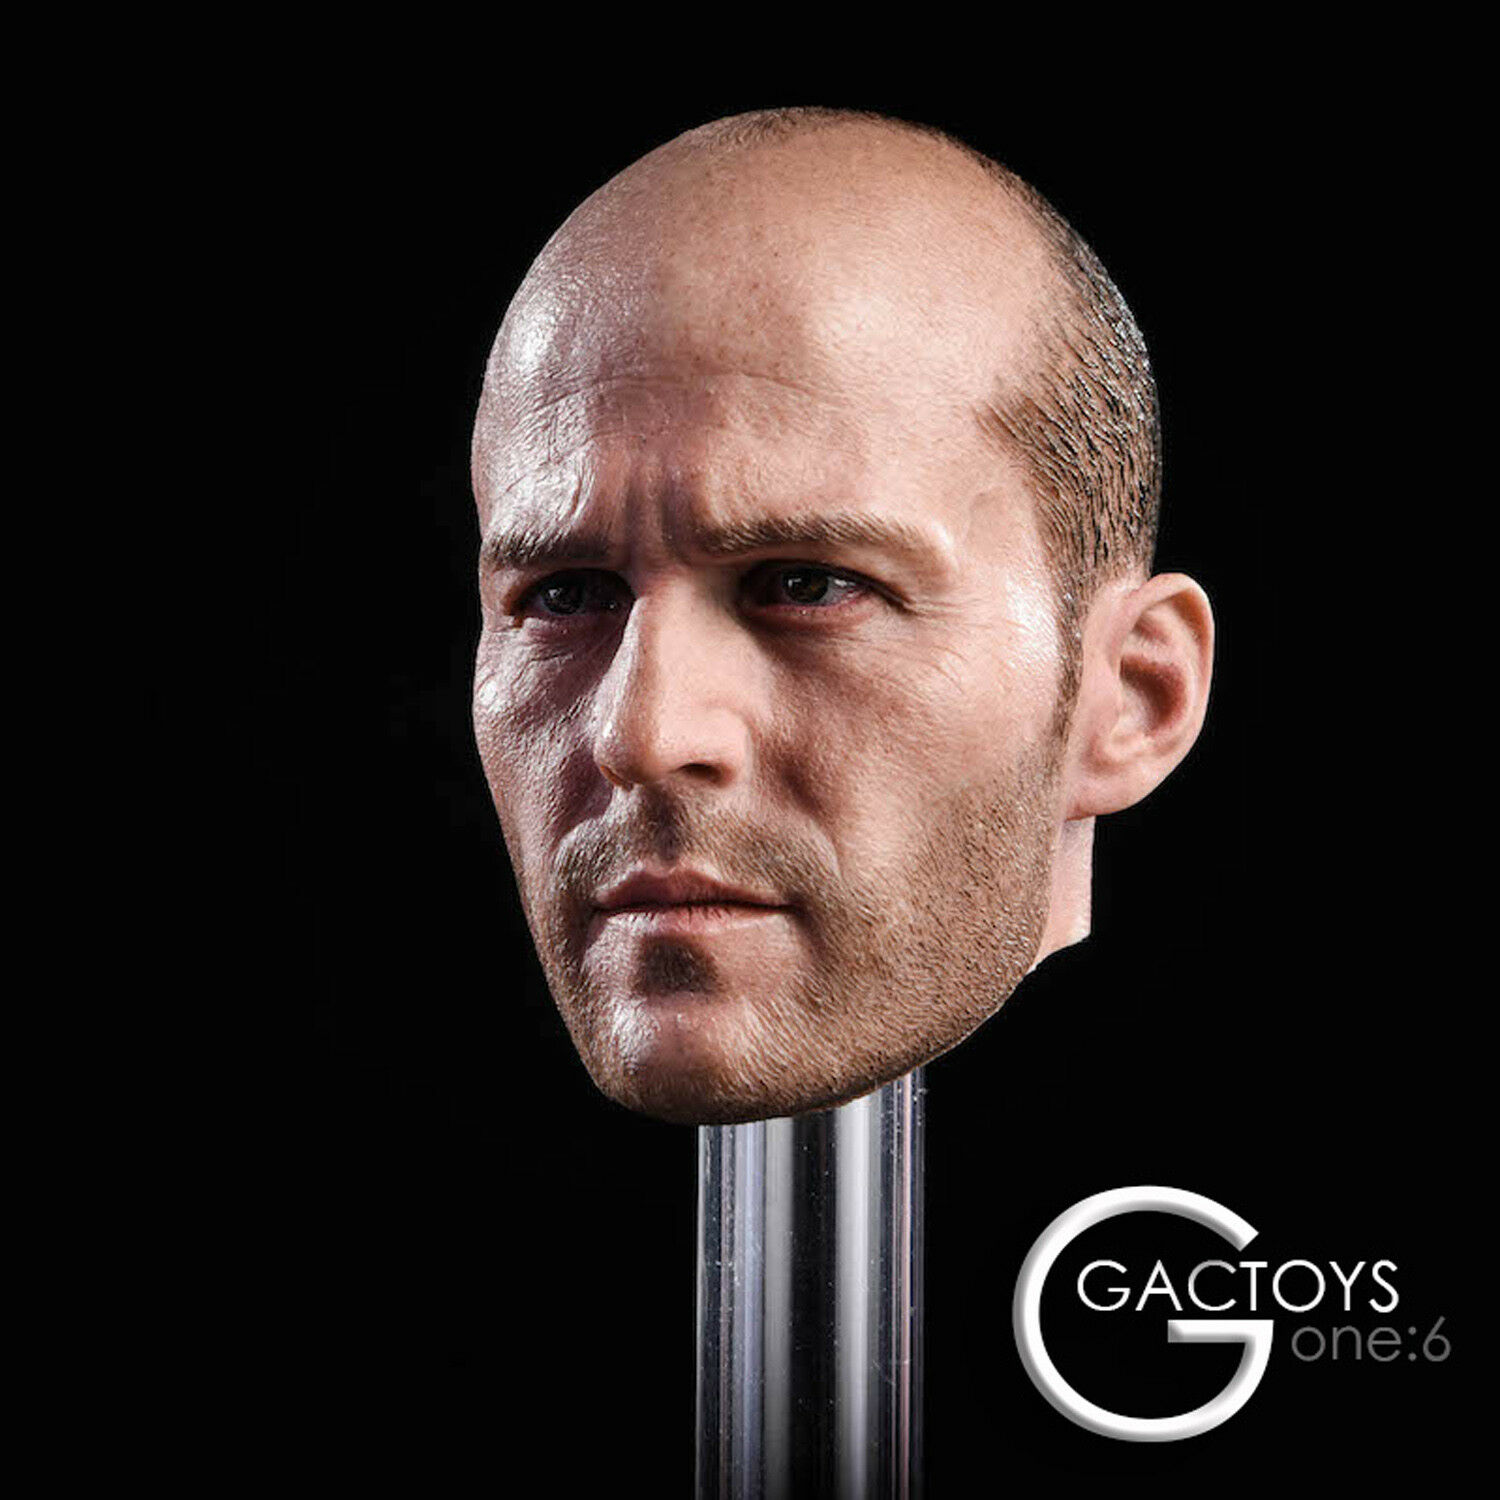 GACTOYS GC023 1 6 Scale Jason Statham Head Sculpt fit for 12  Action Figure